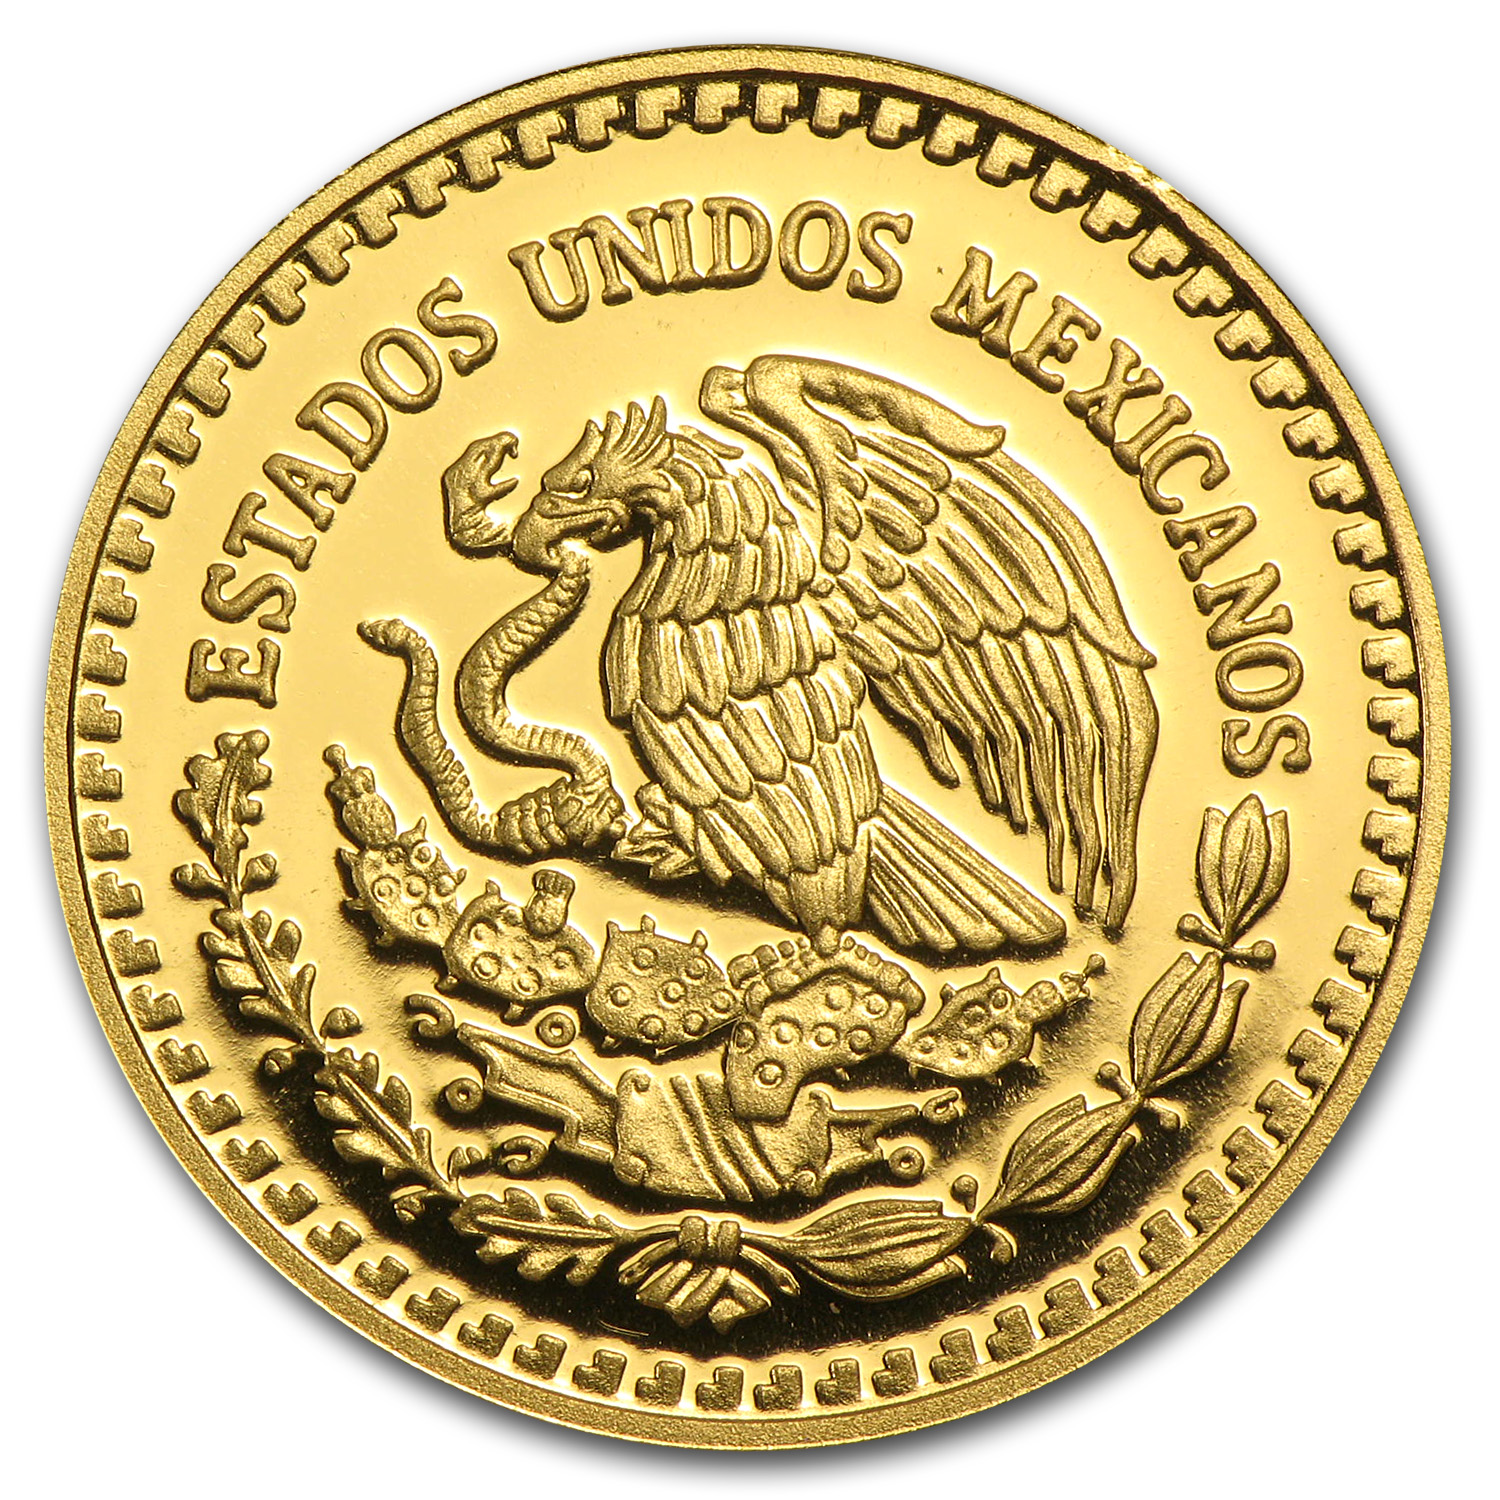 2011 1/4 oz Gold Mexican Libertad - Proof